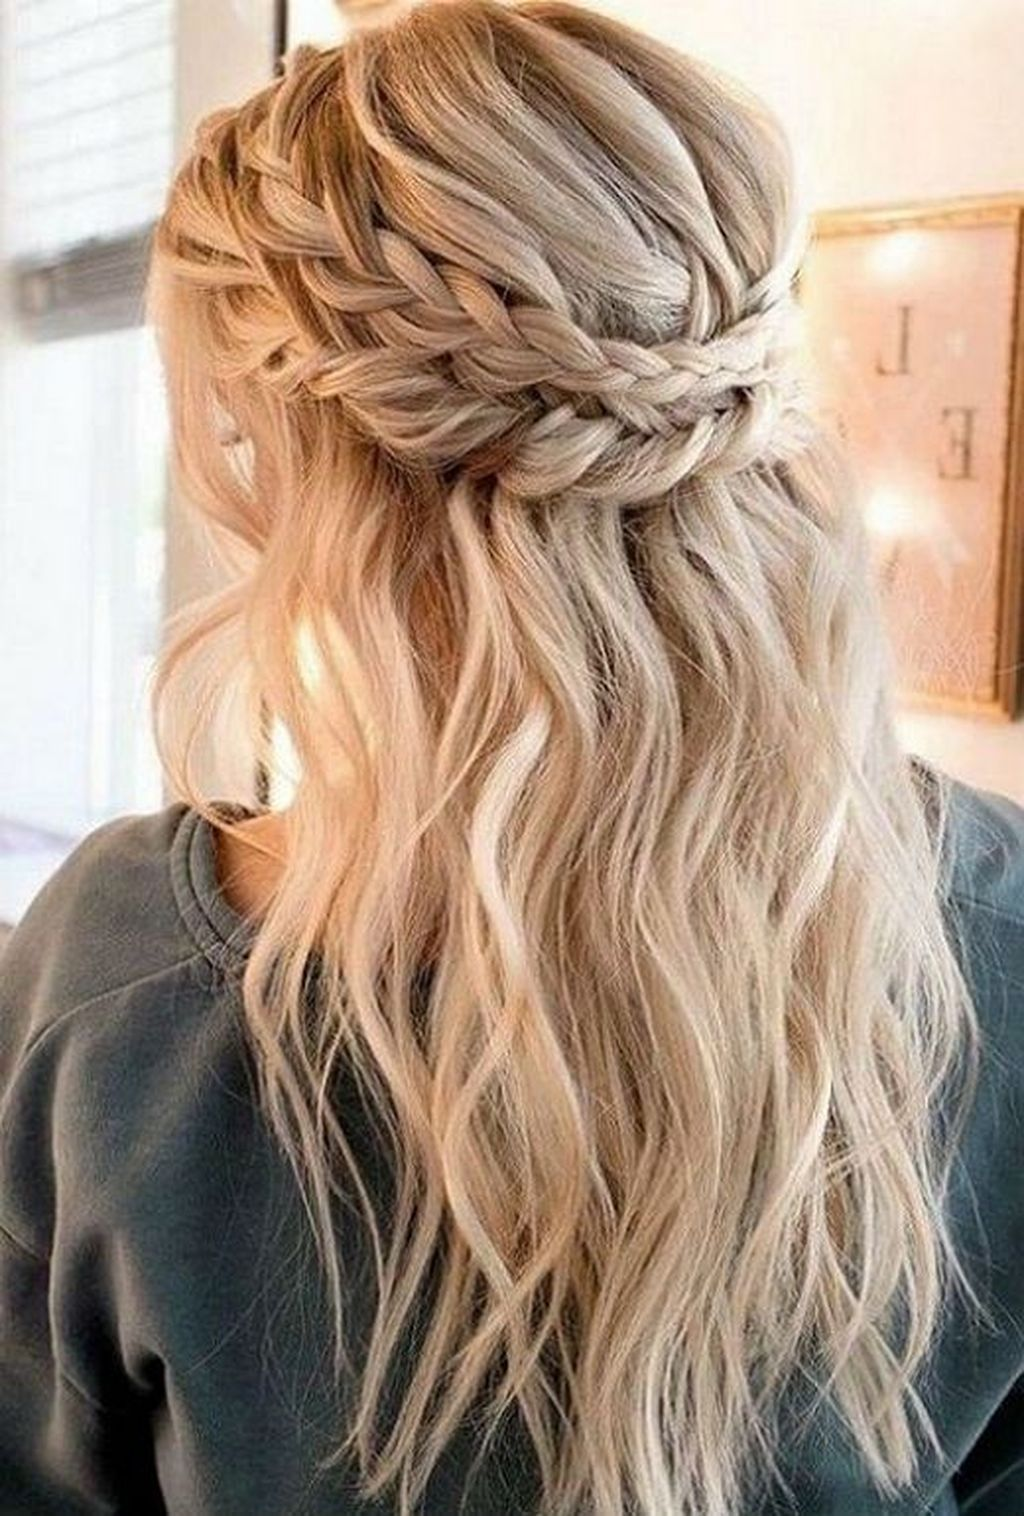 40 Astonishing Curly Prom Hairstyles Ideas To Try In 2019 Hair Styles Prom Hairstyles For Long Hair Braids For Long Hair